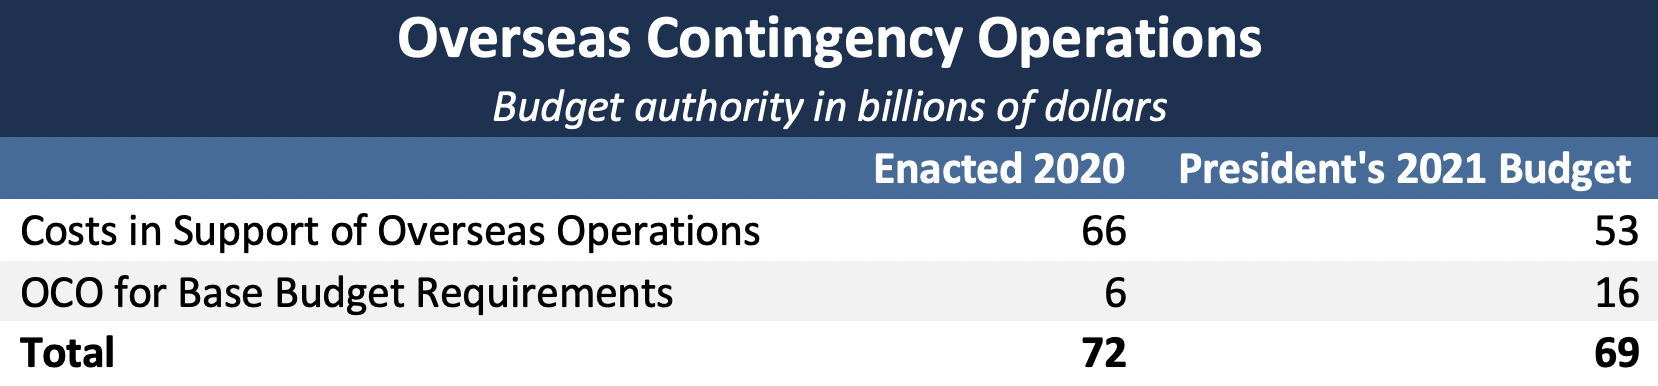 2021 Trump Budget Overseas Contingency Operations funding